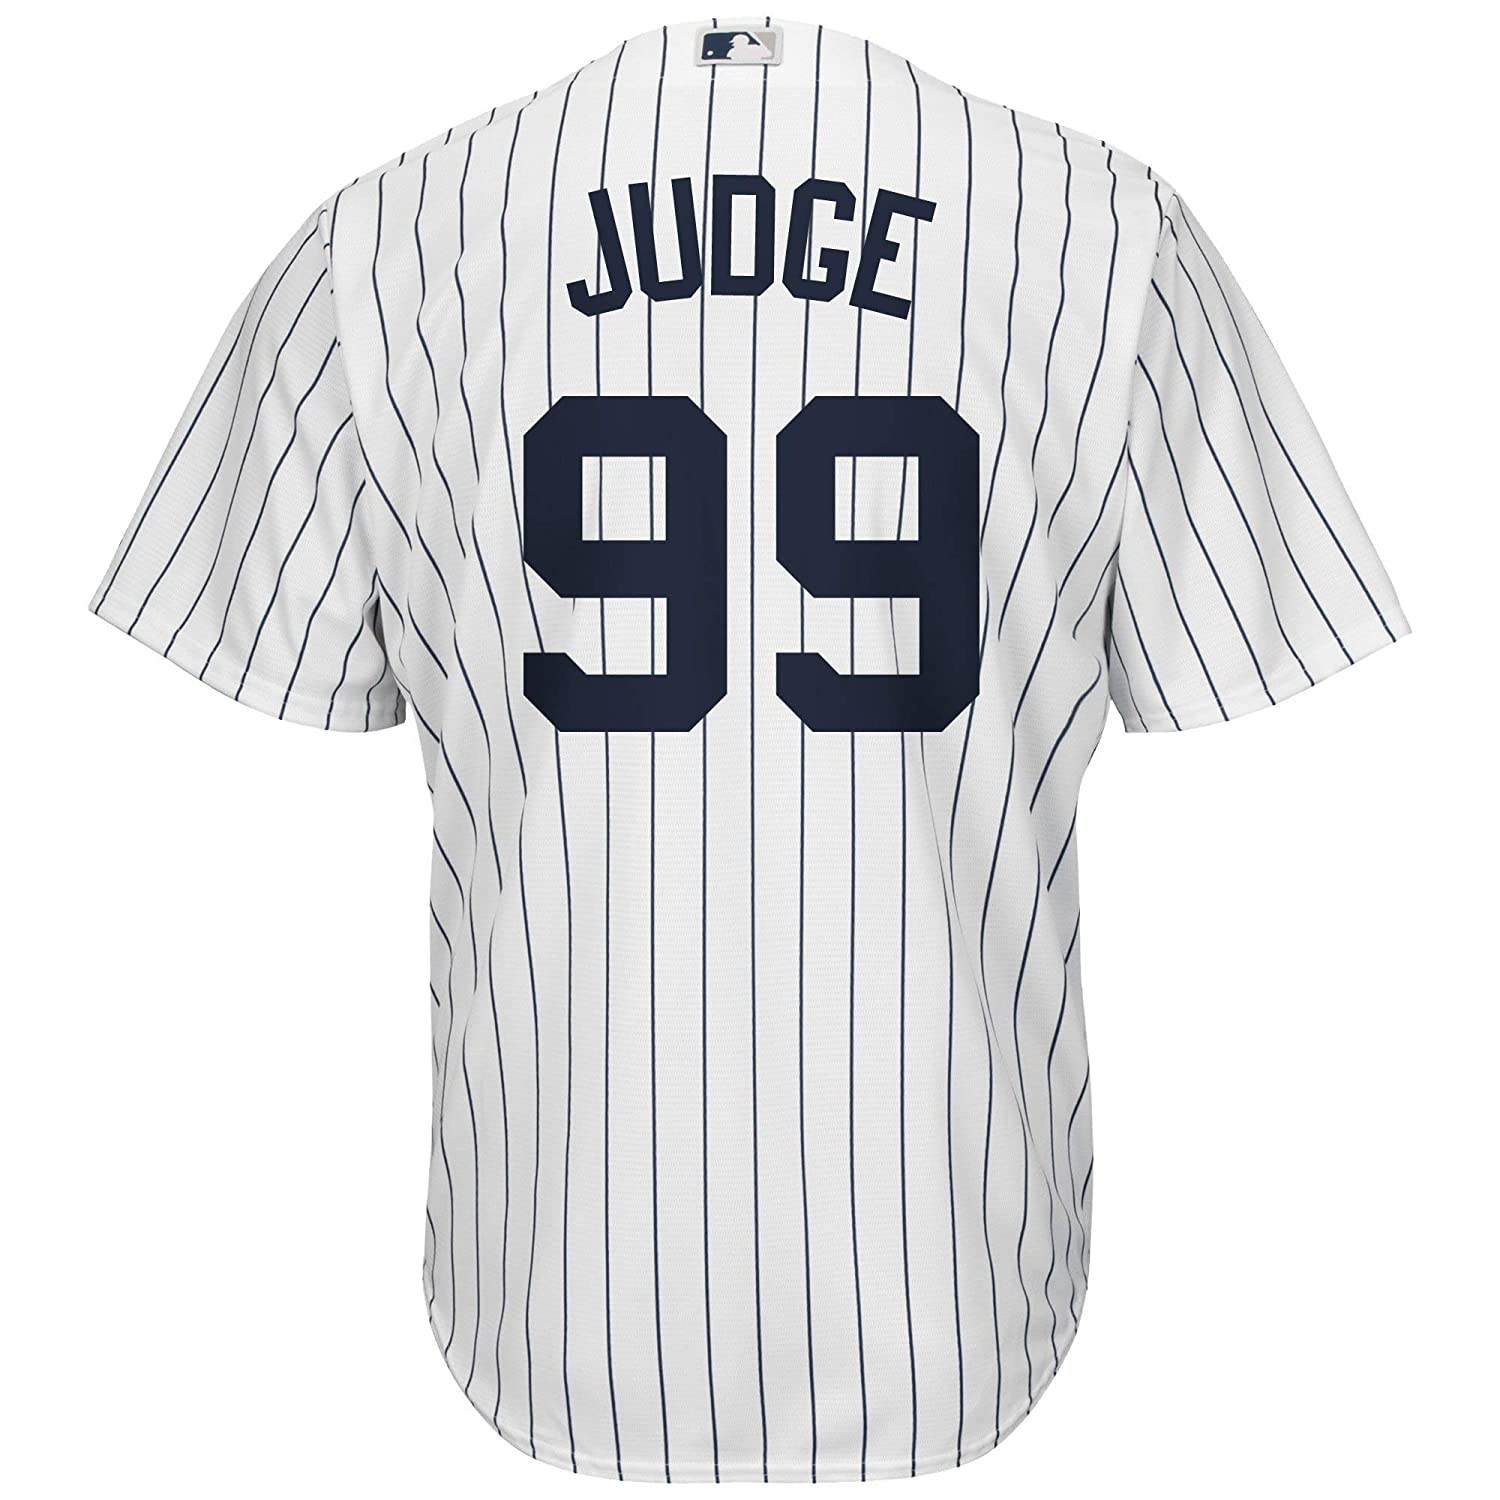 TKGFTU Men's/Women's/Youth_Aaron_Judge_White_Player_Jersey